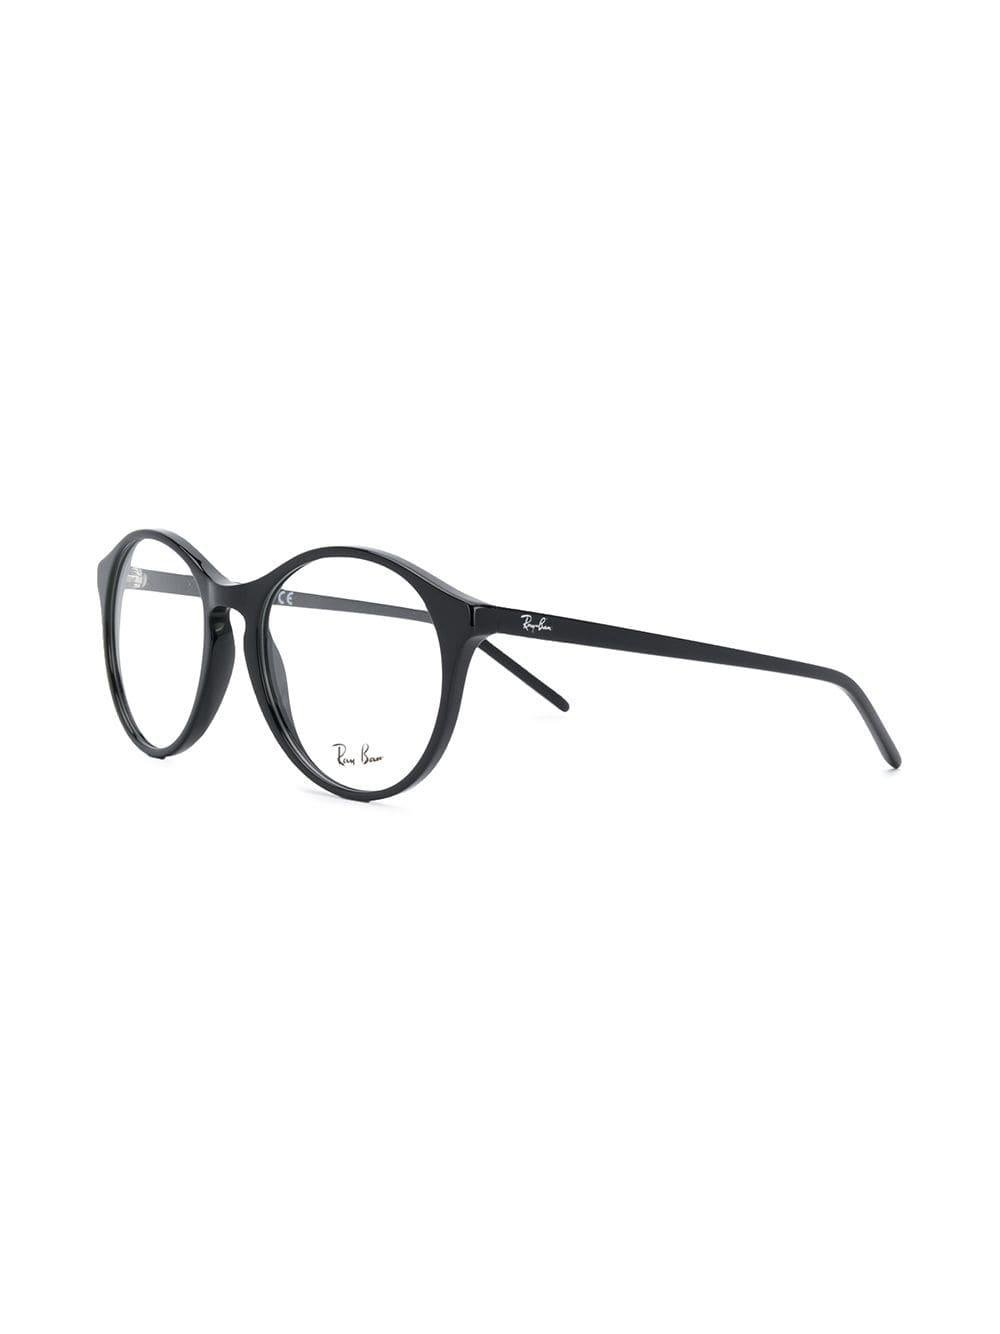 a0b4b6fb9fcca Ray-Ban Round Frame Glasses in Black - Lyst